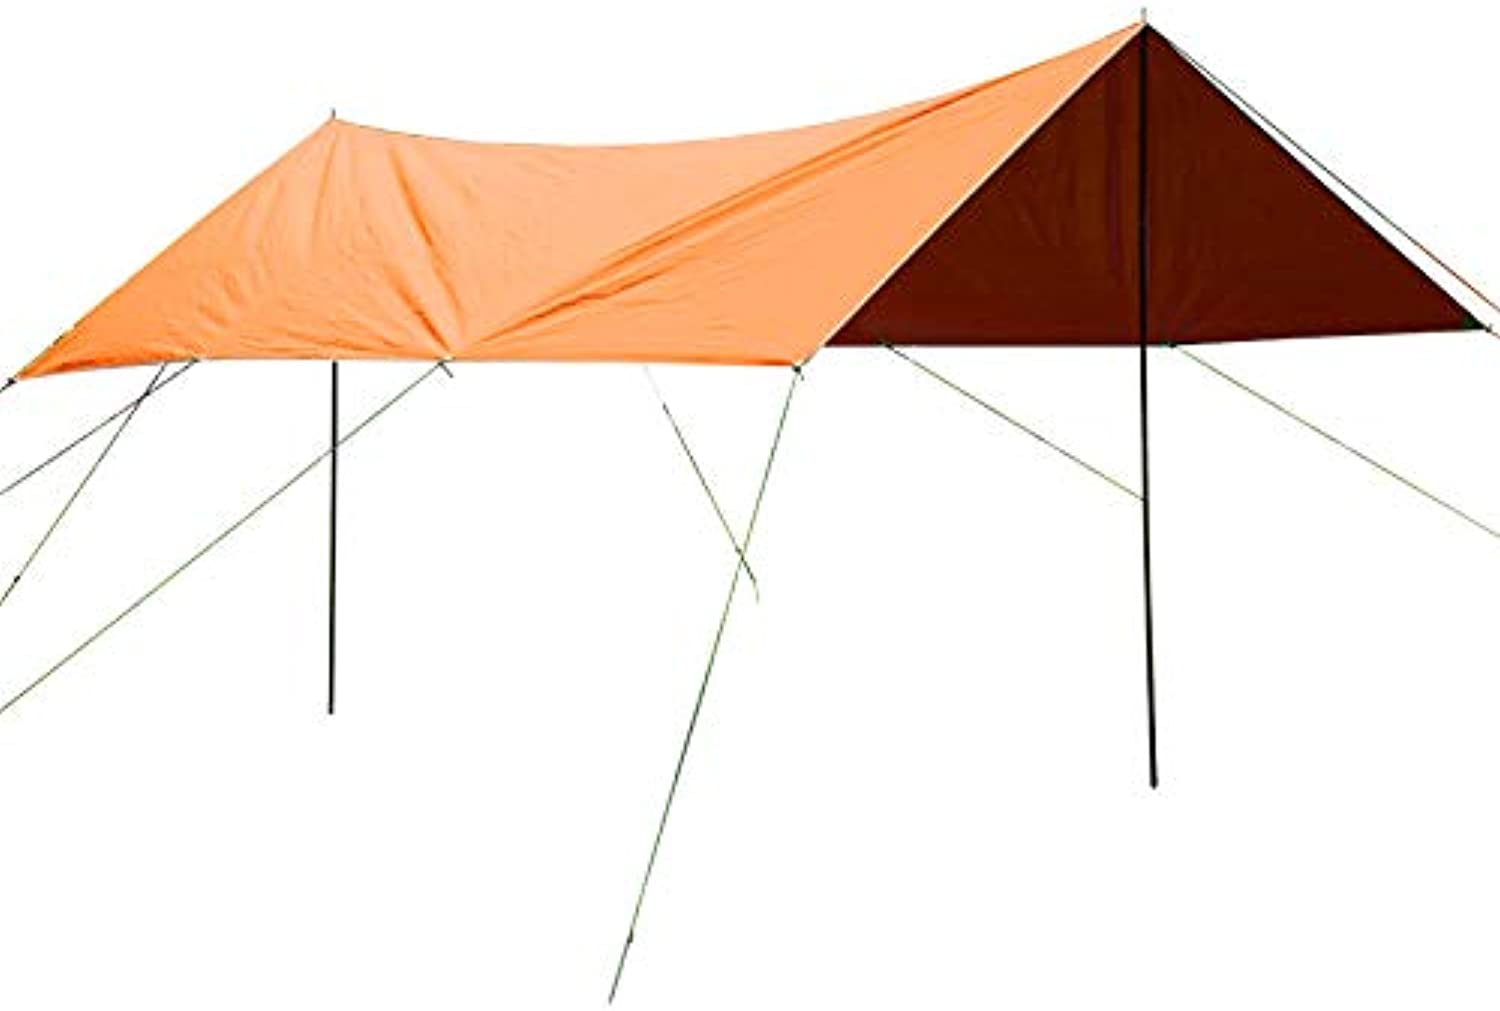 Outdoor Tent Awning with Poles Picnic Beach Party Shades Fast Built Quick Removable Rain Camping Sun Shelter 4x3x2m